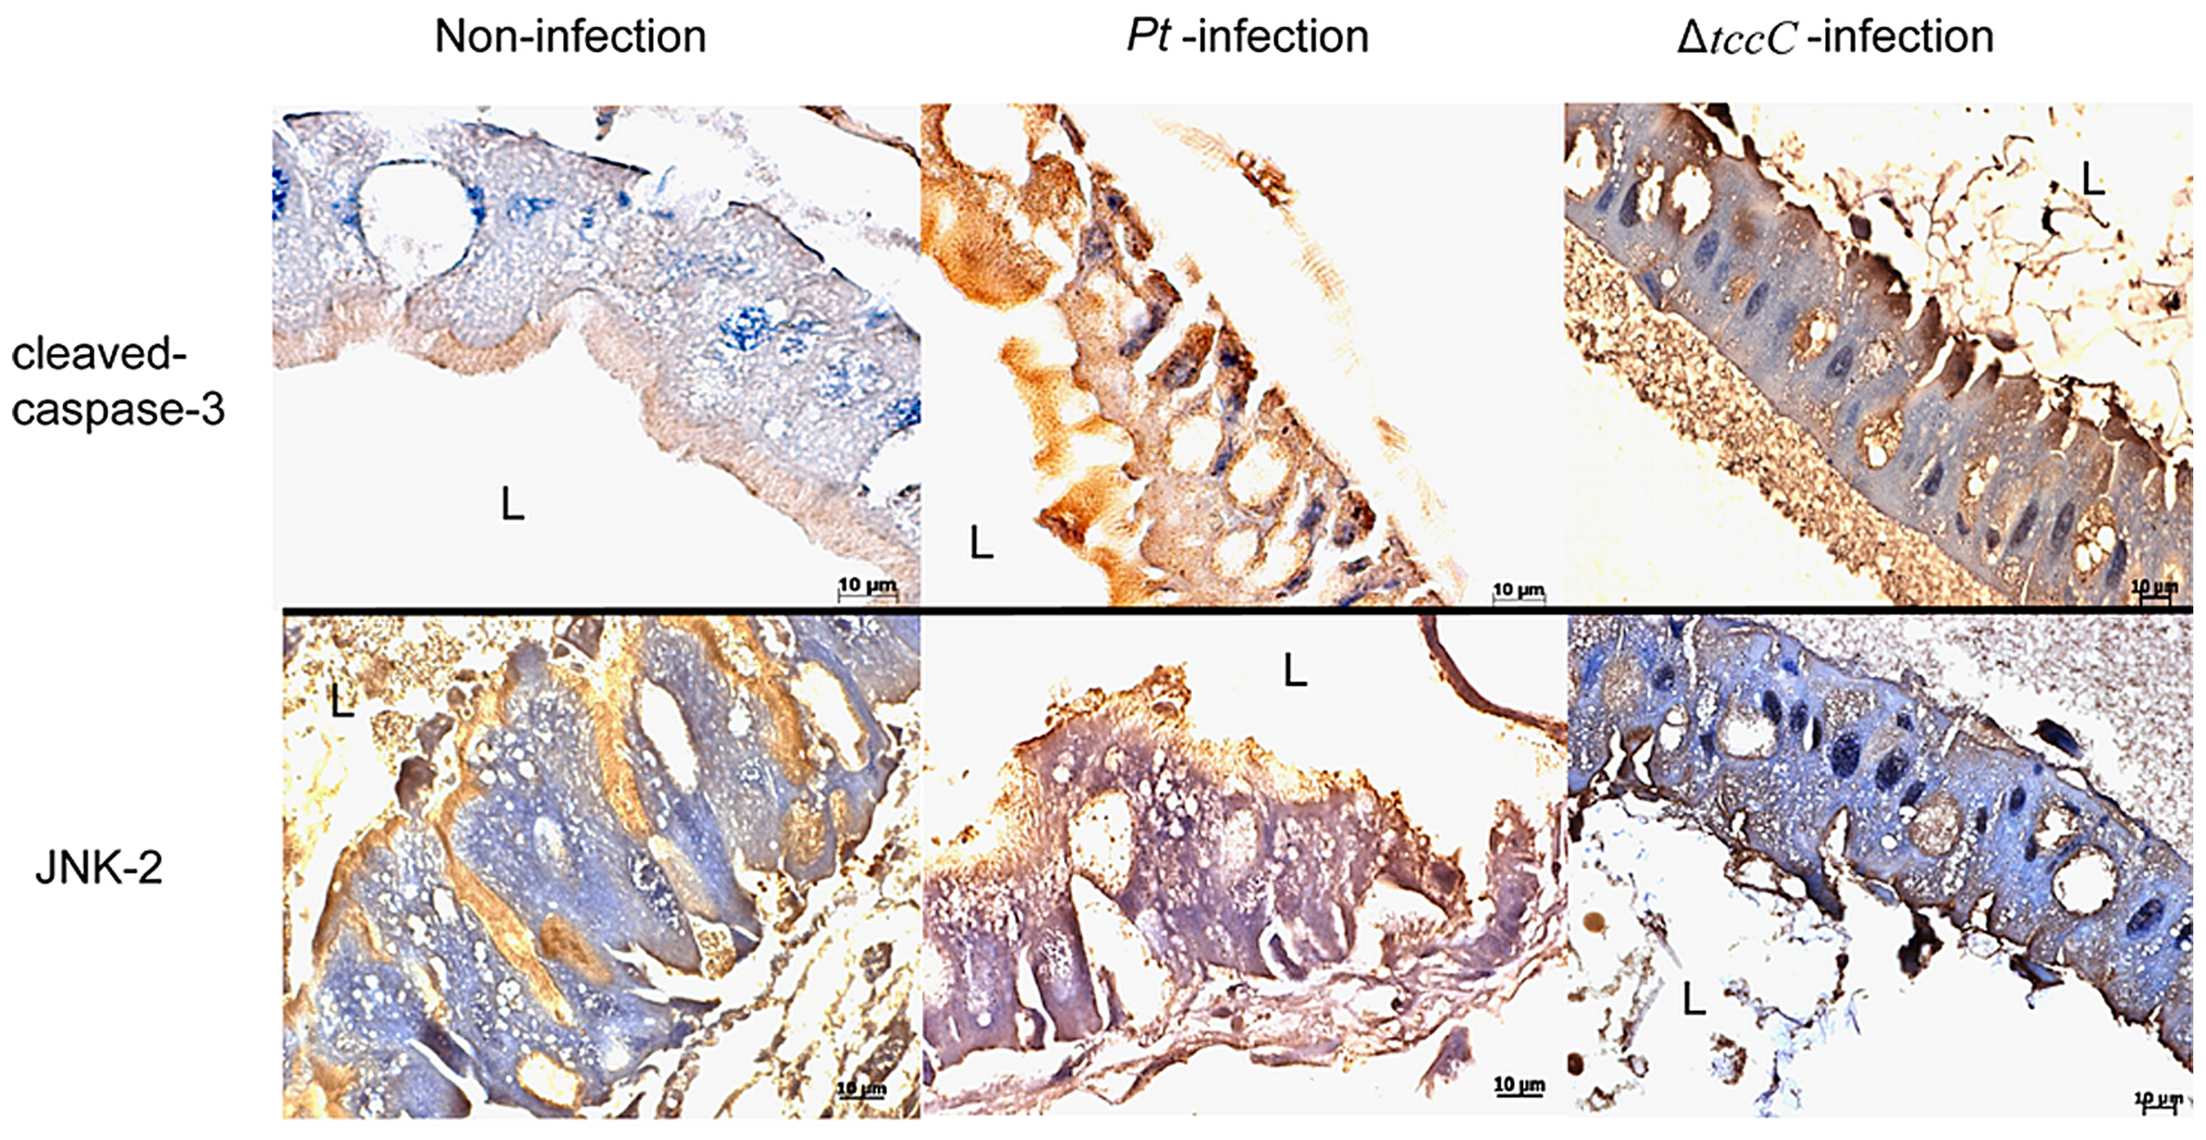 Immunohistochemical analysis of cleaved-caspase-3 and JNK-2 protein expression level in the gut tissue of <i>P. xylostella</i> larva.